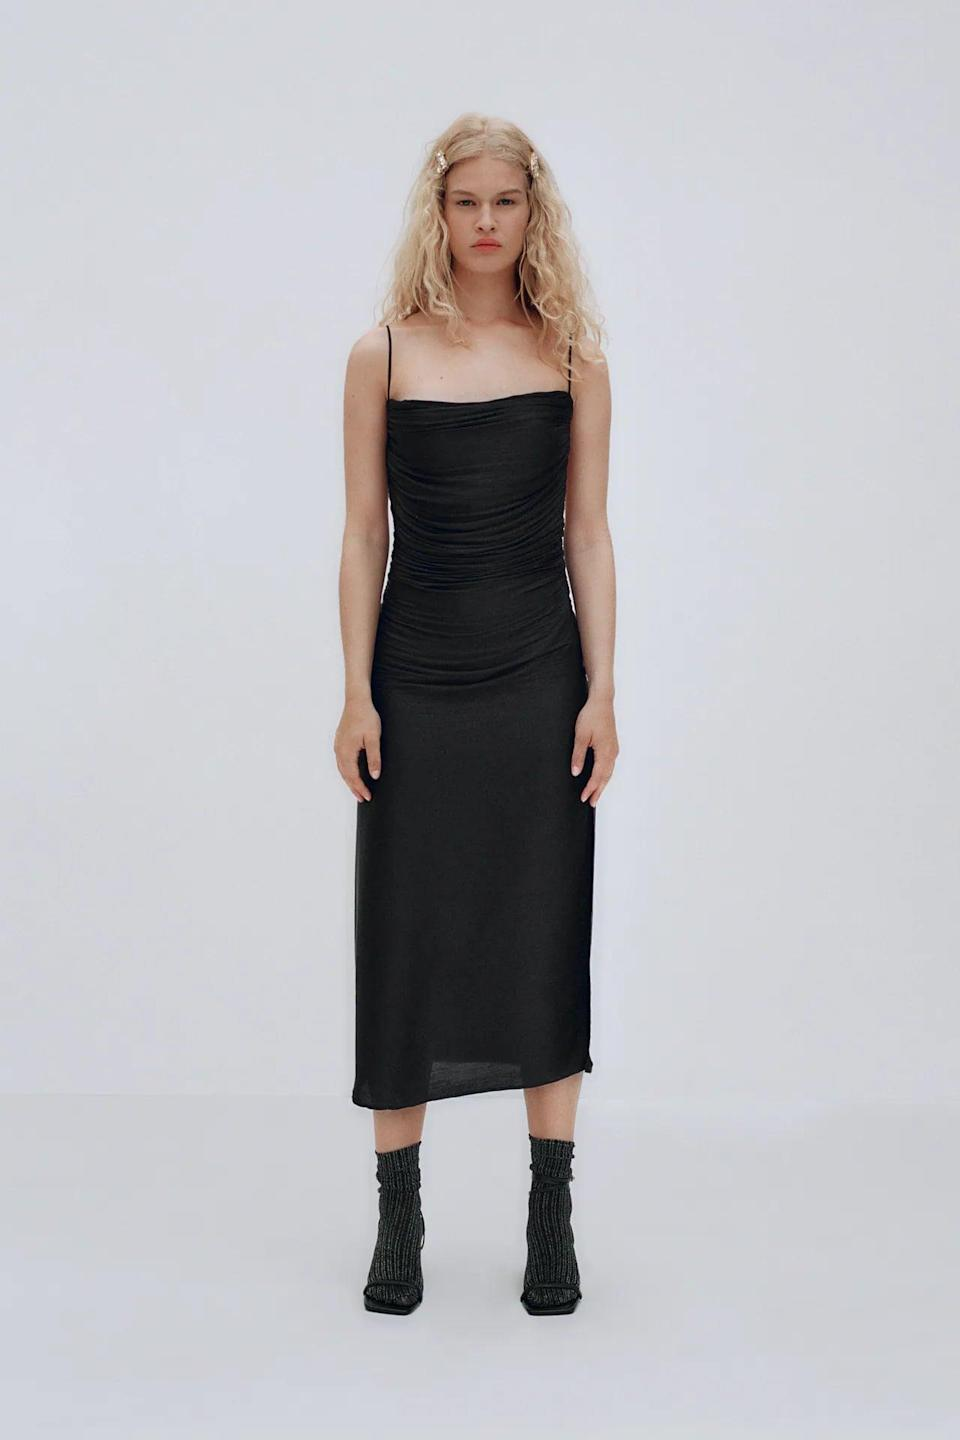 <p>Bring the sexy in this <span>Draped Midi Dress</span> ($50) for a night out, or pair it with sneakers and a light jacket for an easygoing daytime look.</p>